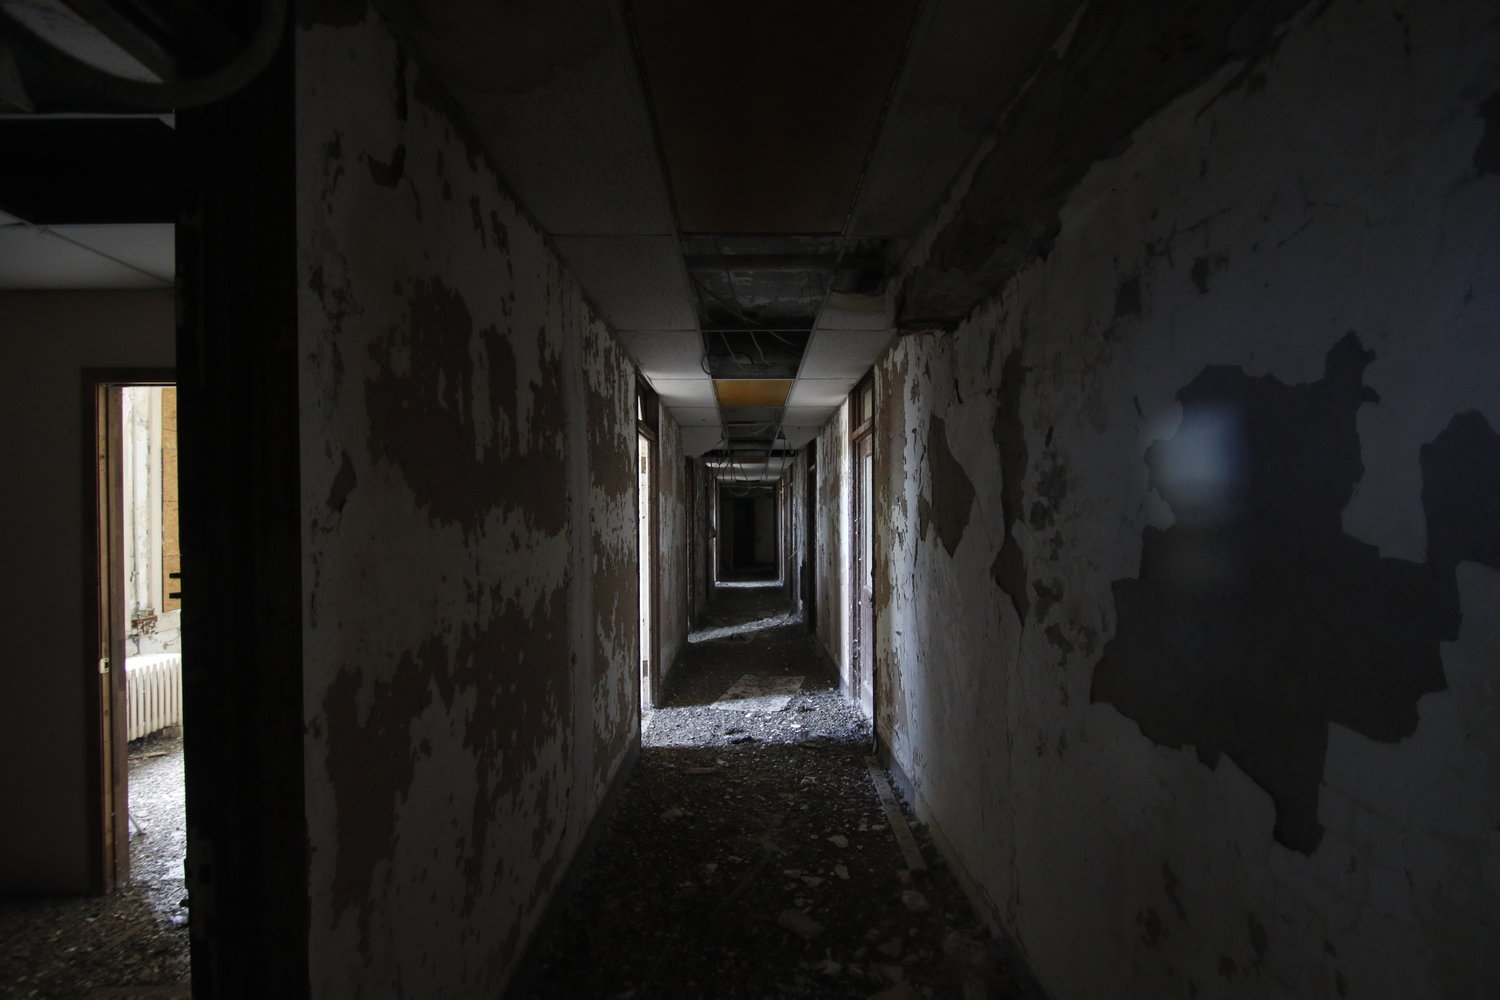 The hallways of each floor were covered in chipped paint, fallen ceiling ties, splintered wires and filth.